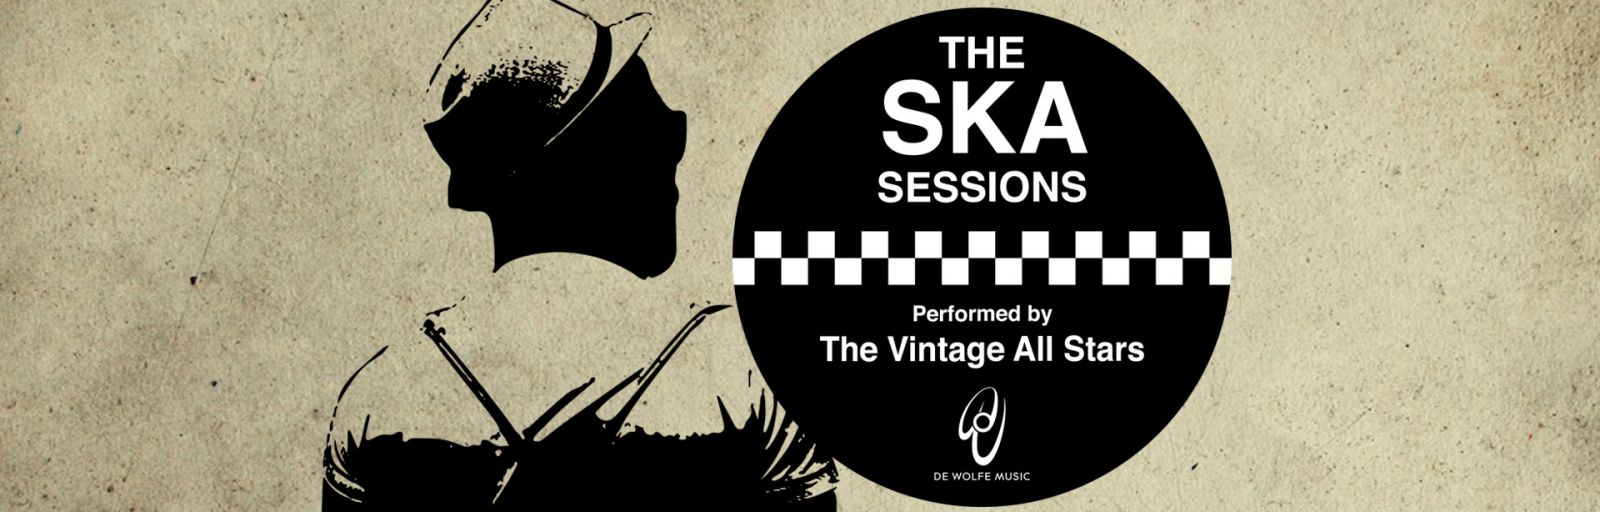 The Ska Sessions - De Wolfe Music